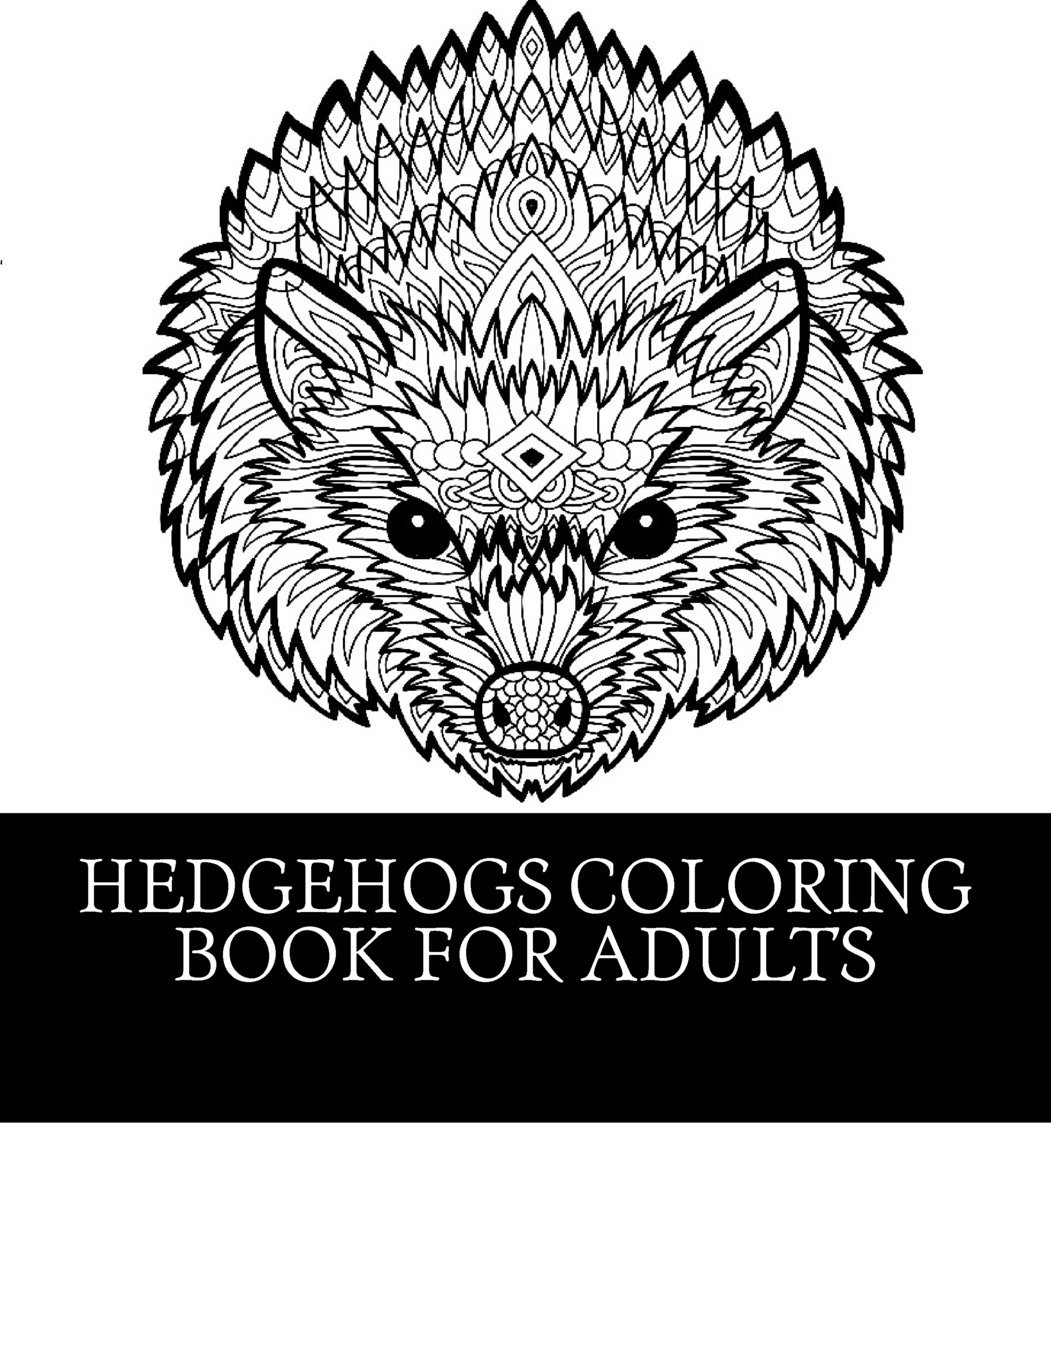 Hedgehogs Coloring Book For Adults  21 Beautiful Hedgehog Coloring